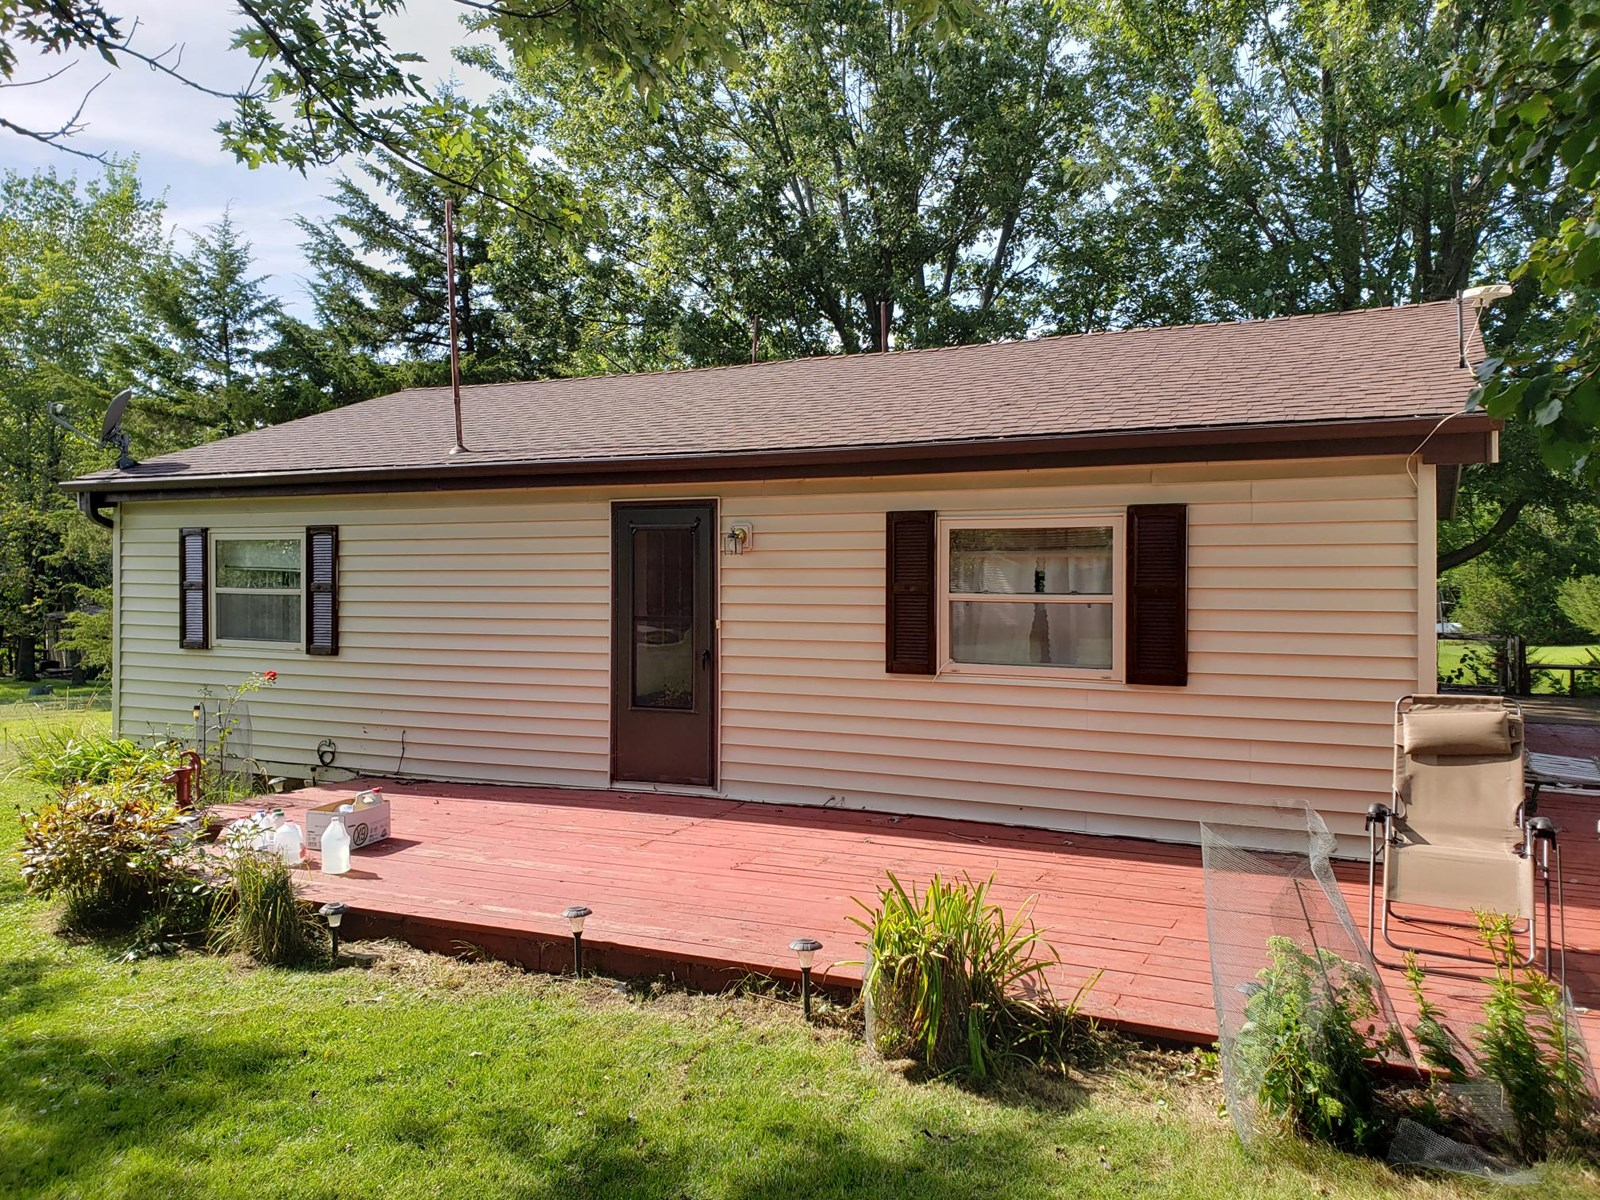 Two Bedroom, Two Bathroom Home For Sale at Lake Thunderhead